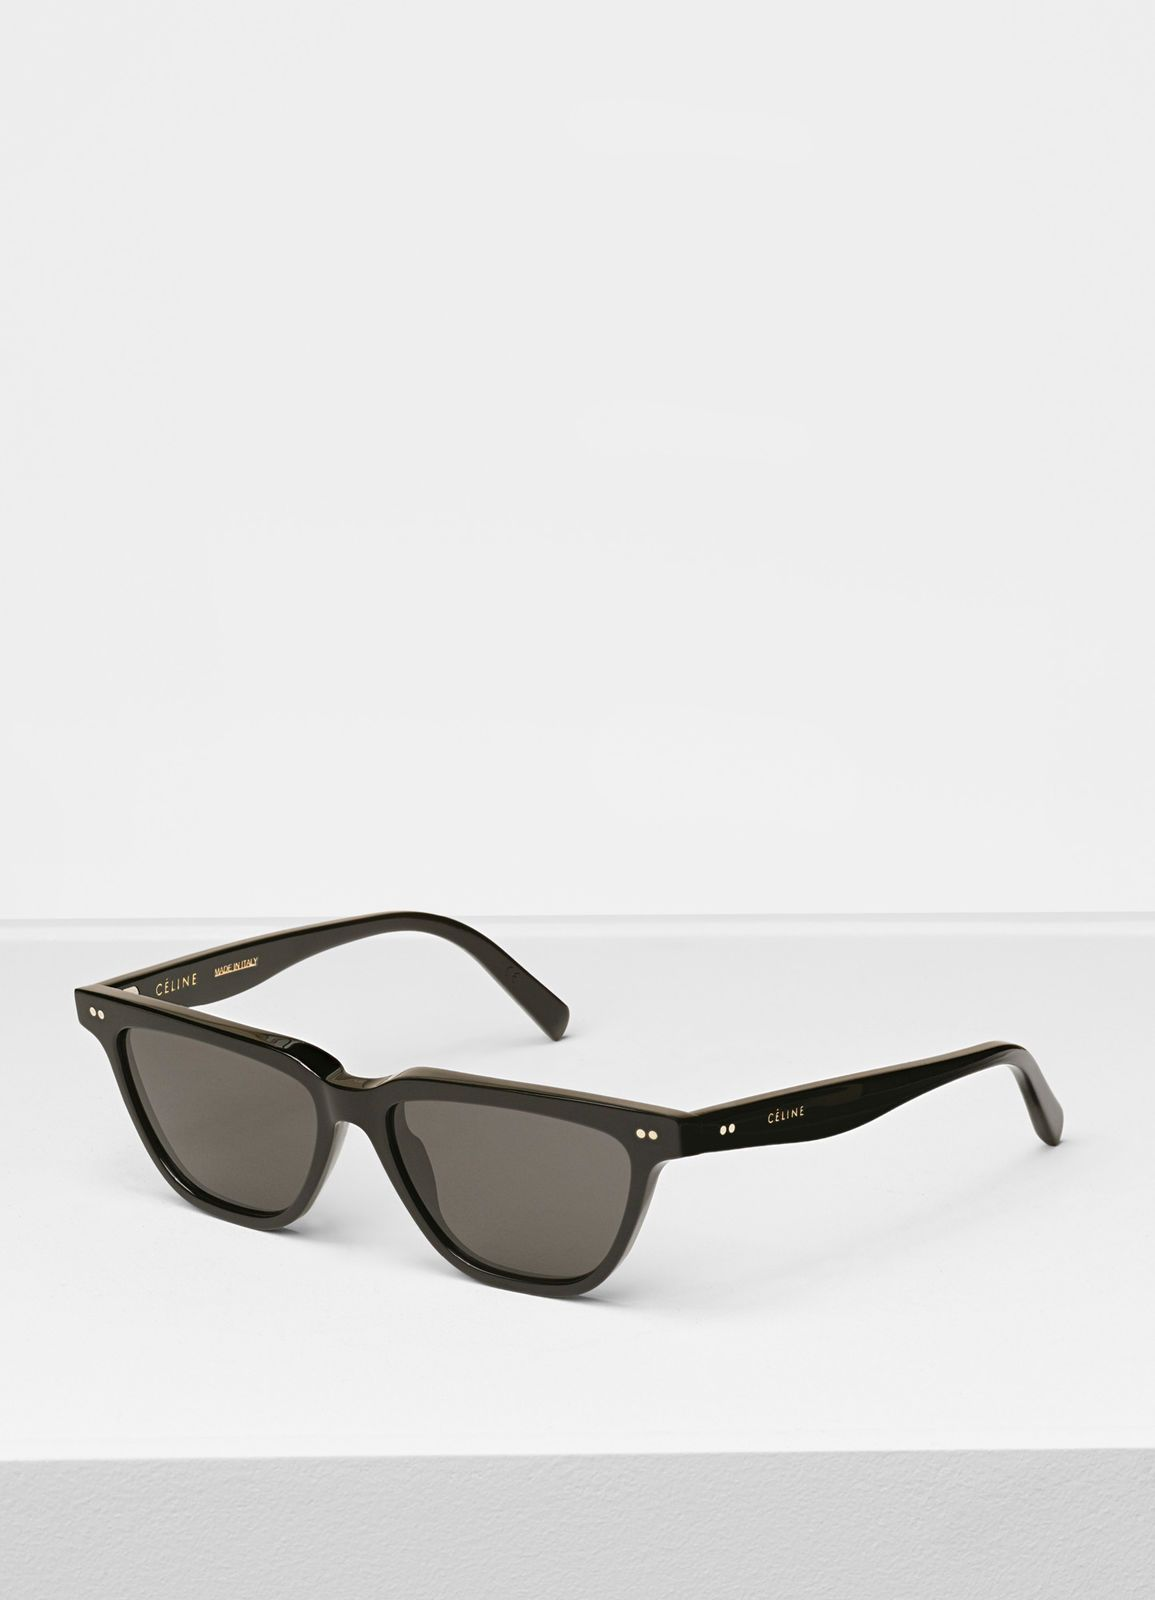 664054b8f8d Céline - Rectangular black sunglasses in acetate